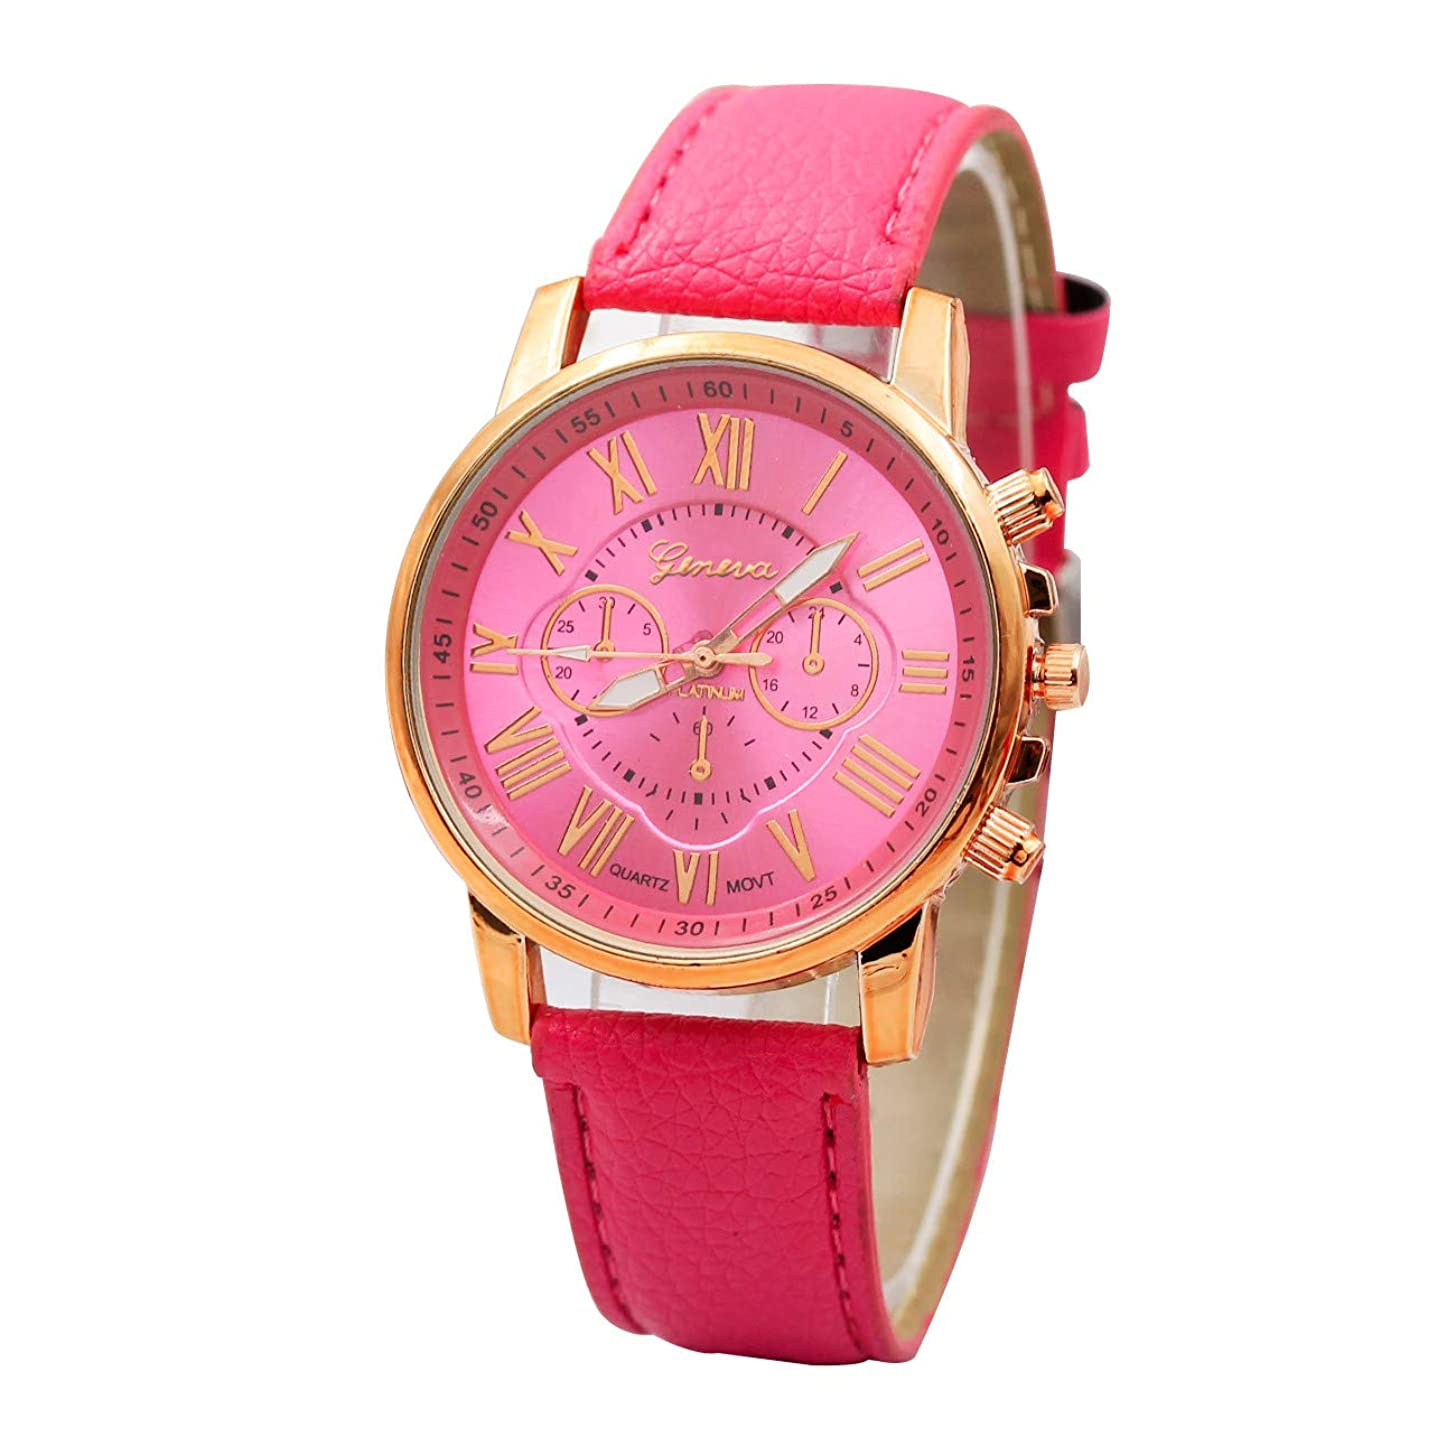 Fashion Women's Watches Geneva Roman Numerals Faux Leather Analog Quartz Watch for Girls Women Gift Holiday Present